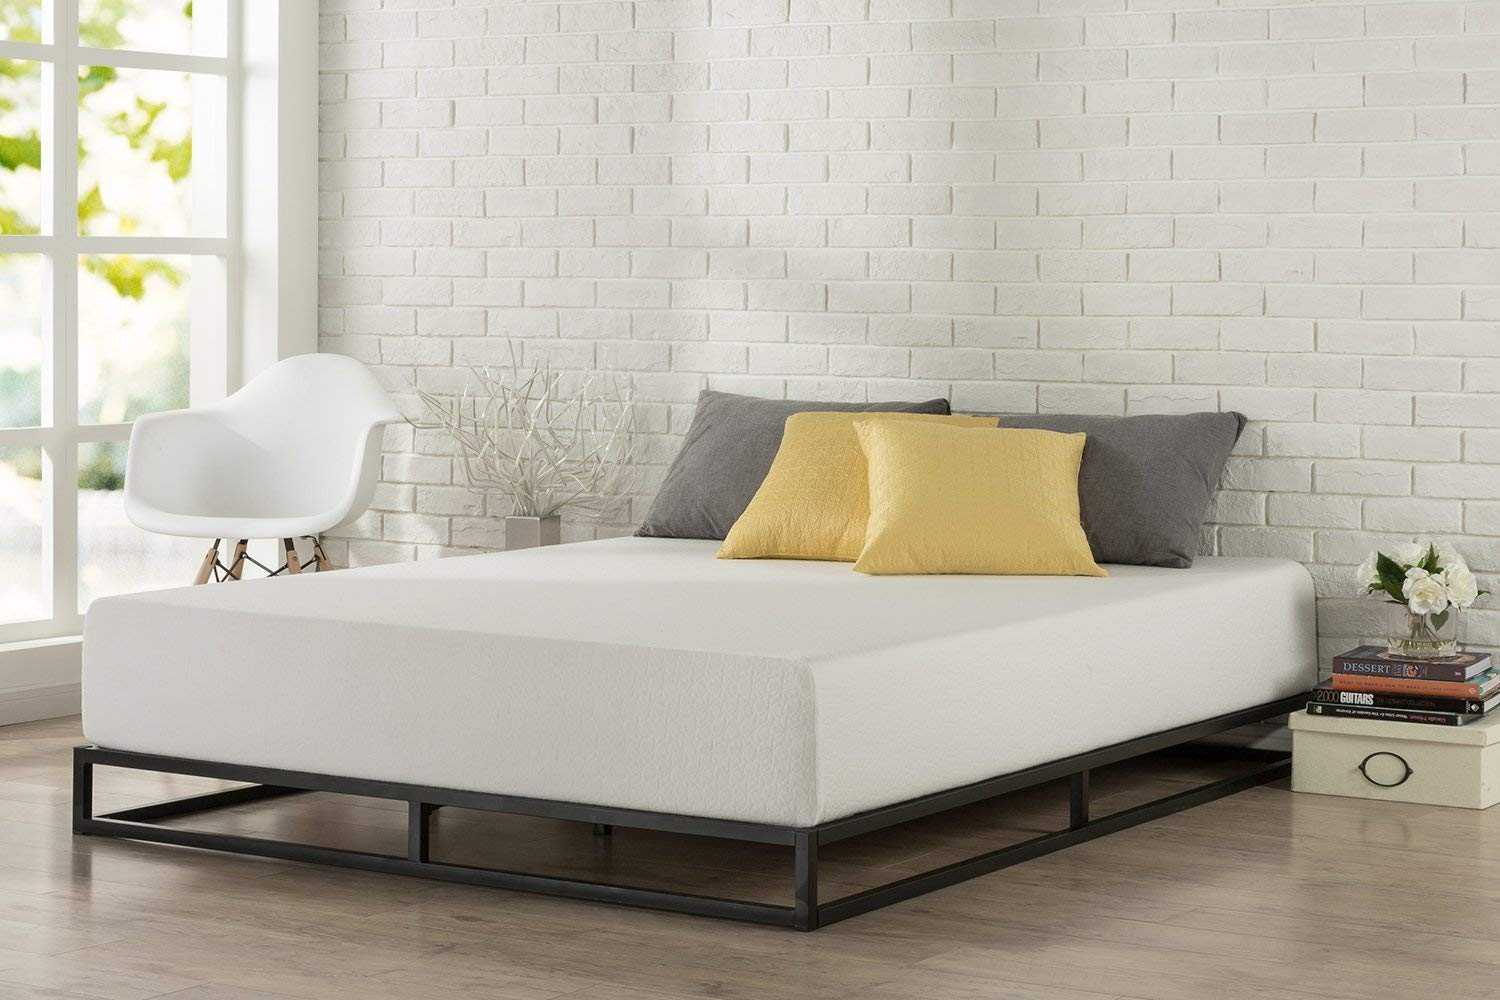 6 Inch Low Profile Platform Bed Frame